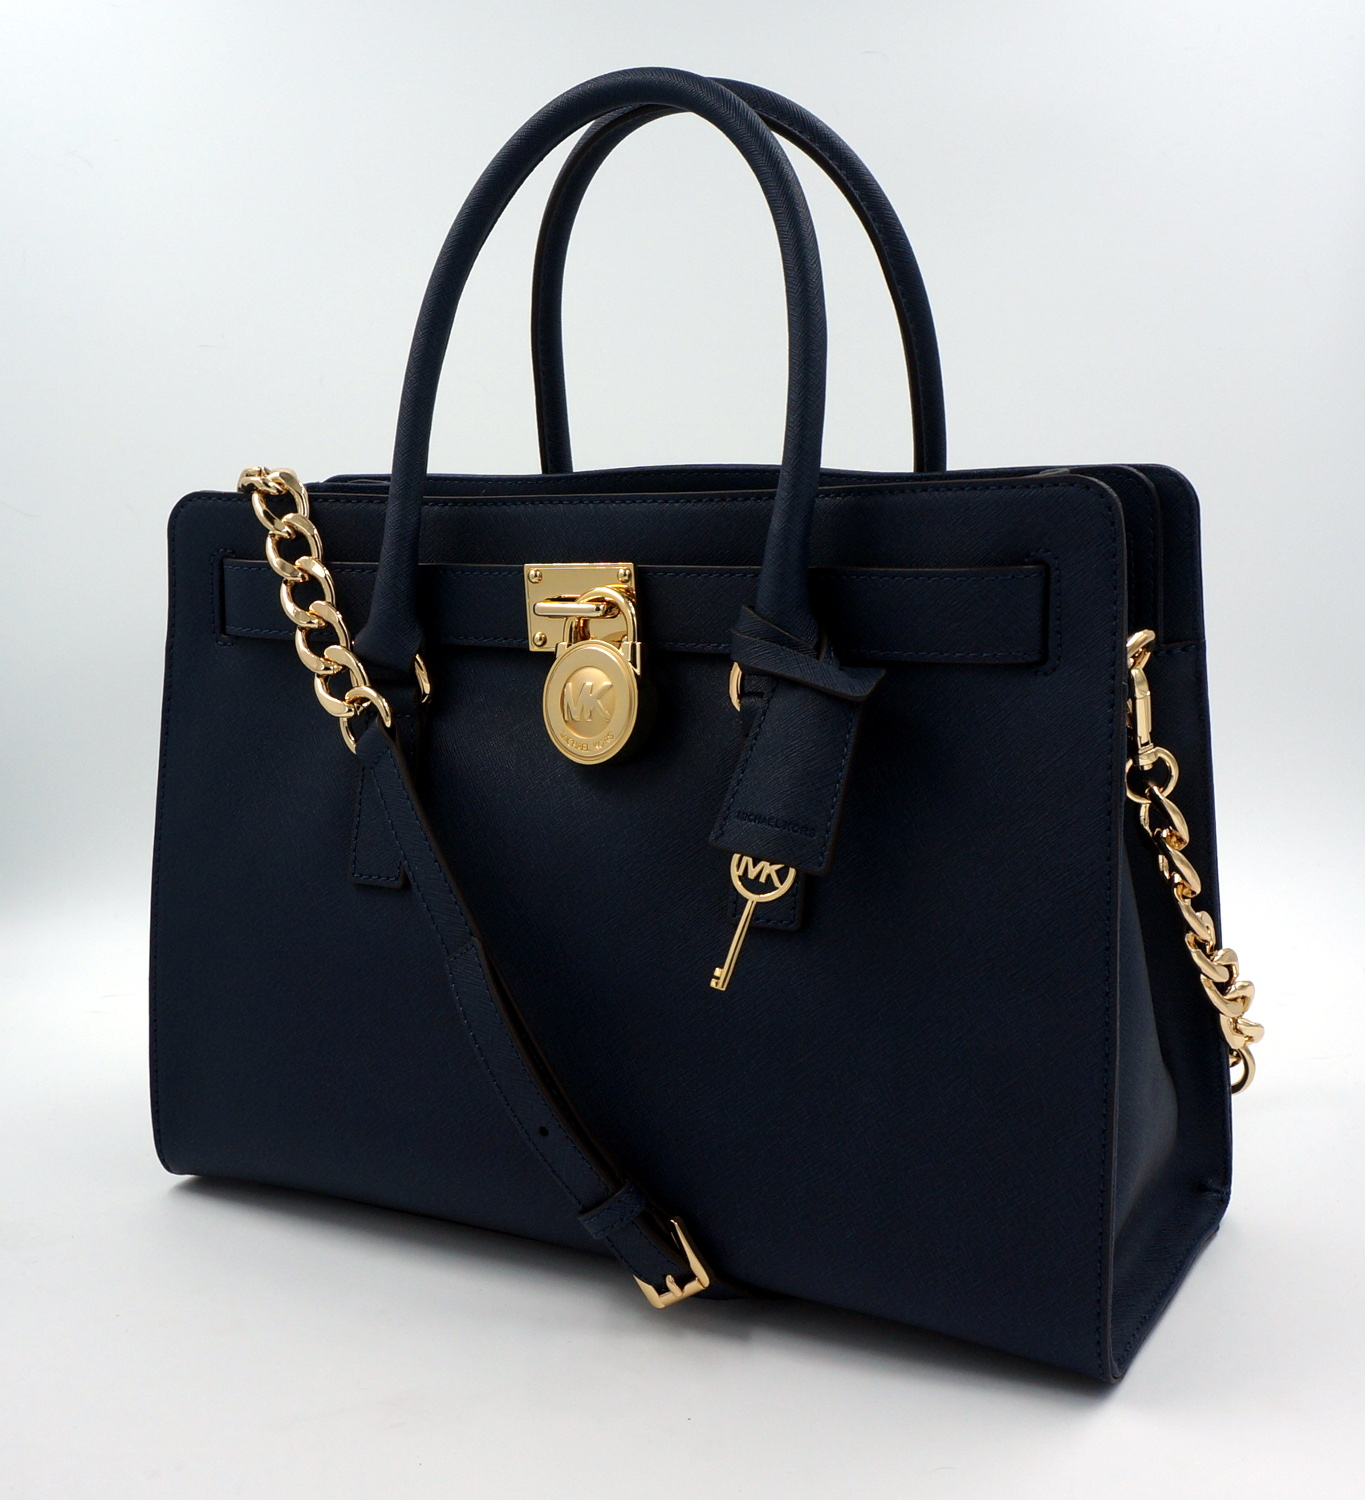 michael kors leder tasche hamilton lg satchel navy uvp. Black Bedroom Furniture Sets. Home Design Ideas